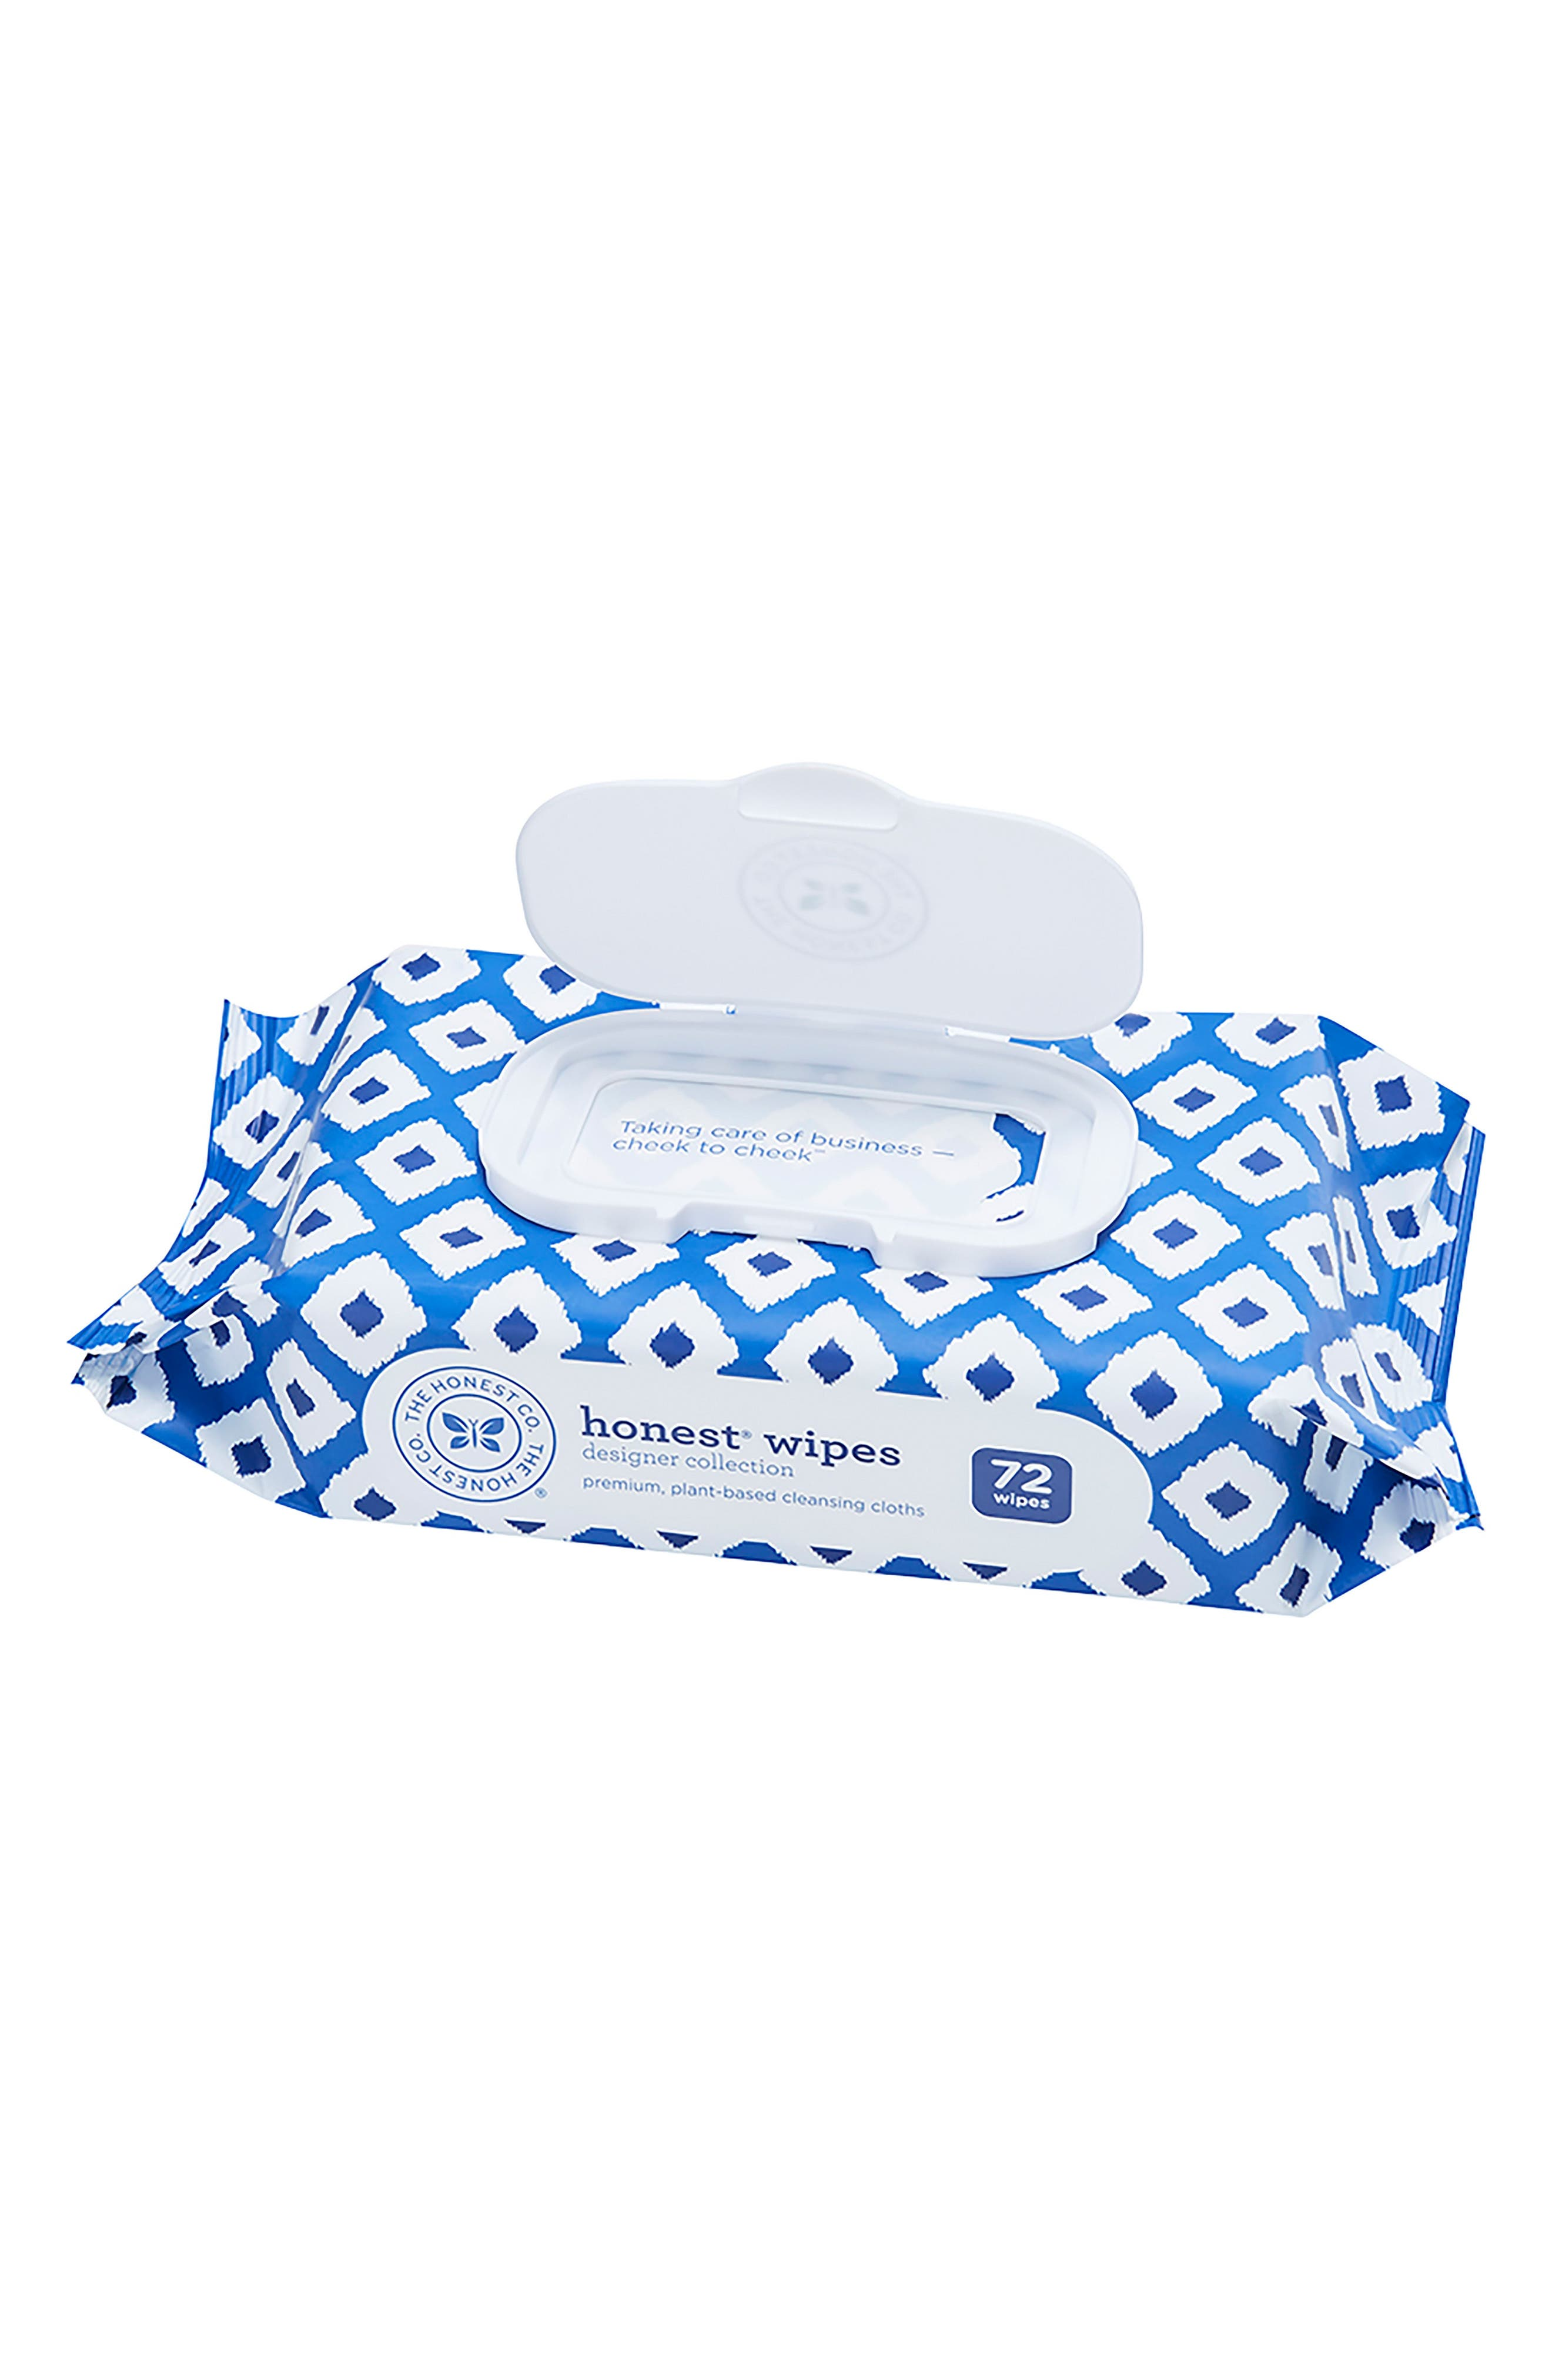 Designer Collection Wipes,                             Main thumbnail 1, color,                             BLUE